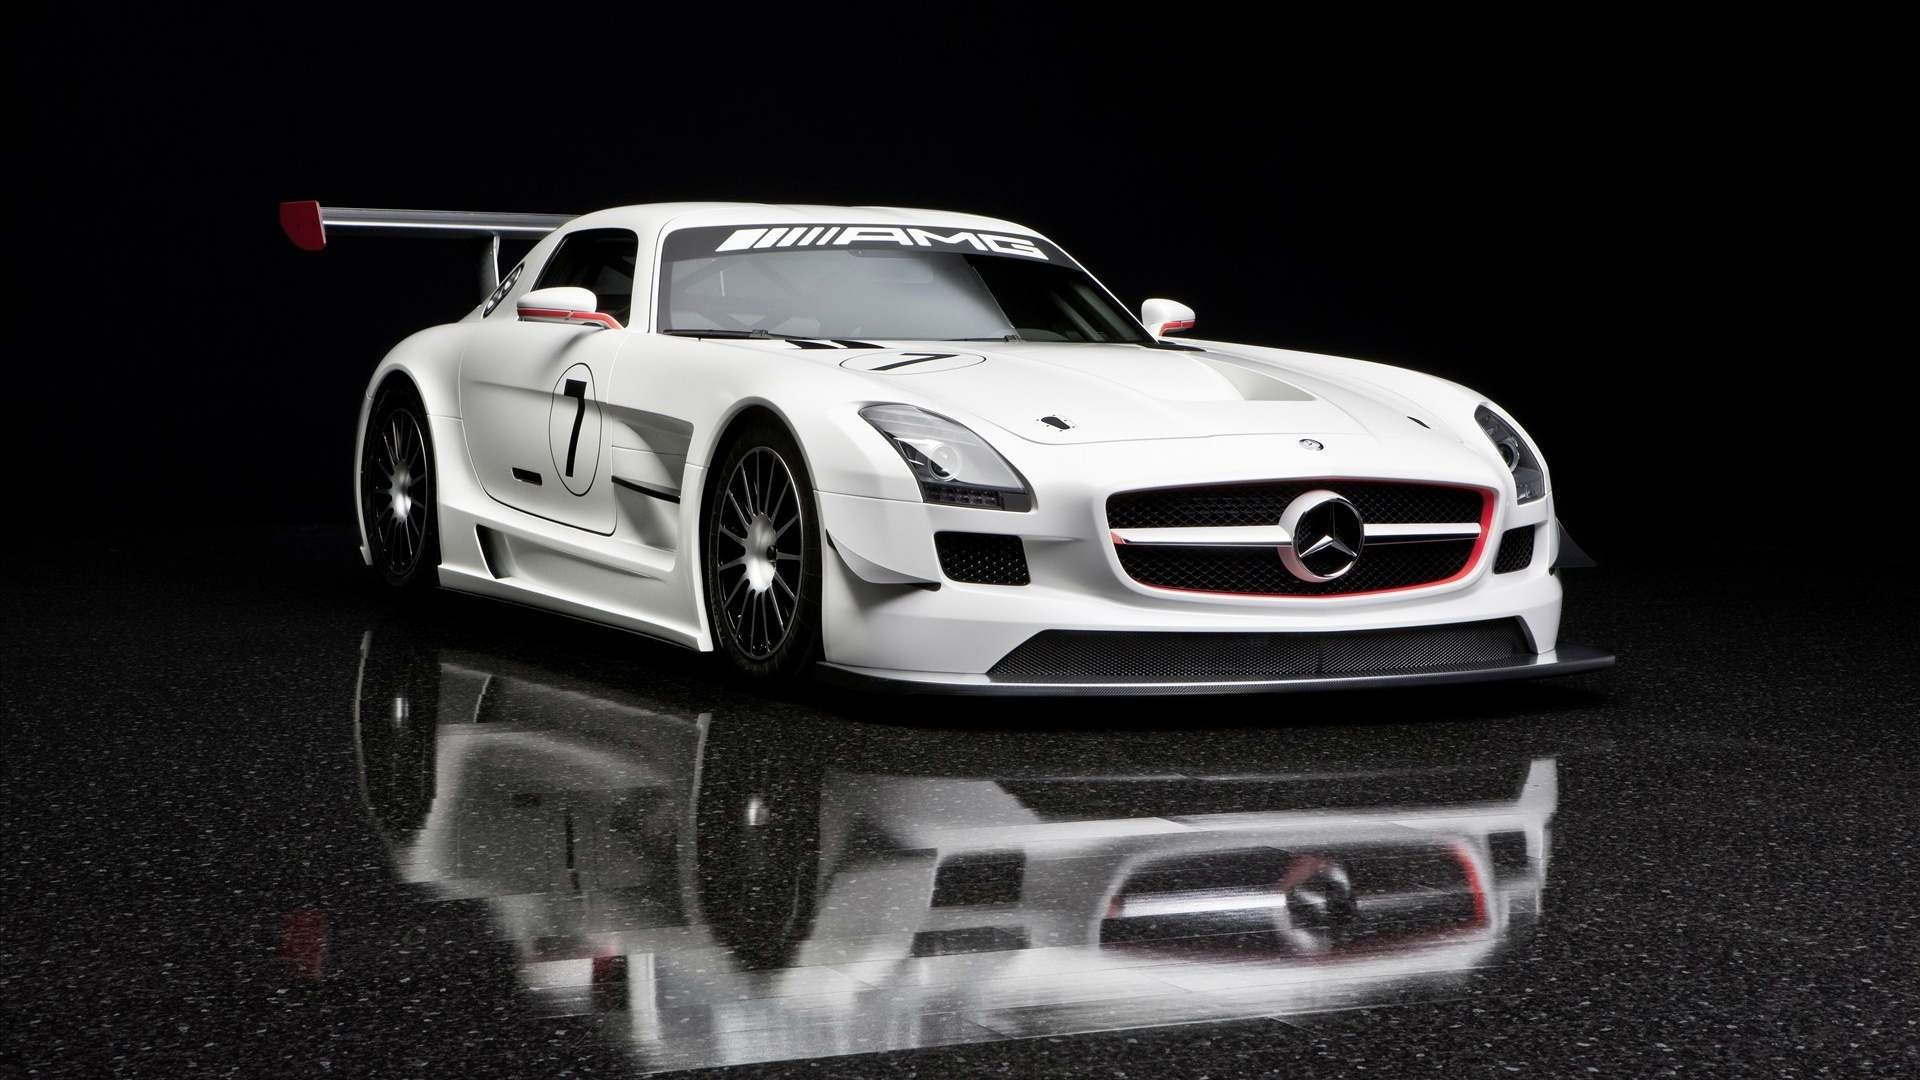 Latest Wallpaper Mercedes Benz Cars Hd Wallpapers Free Download